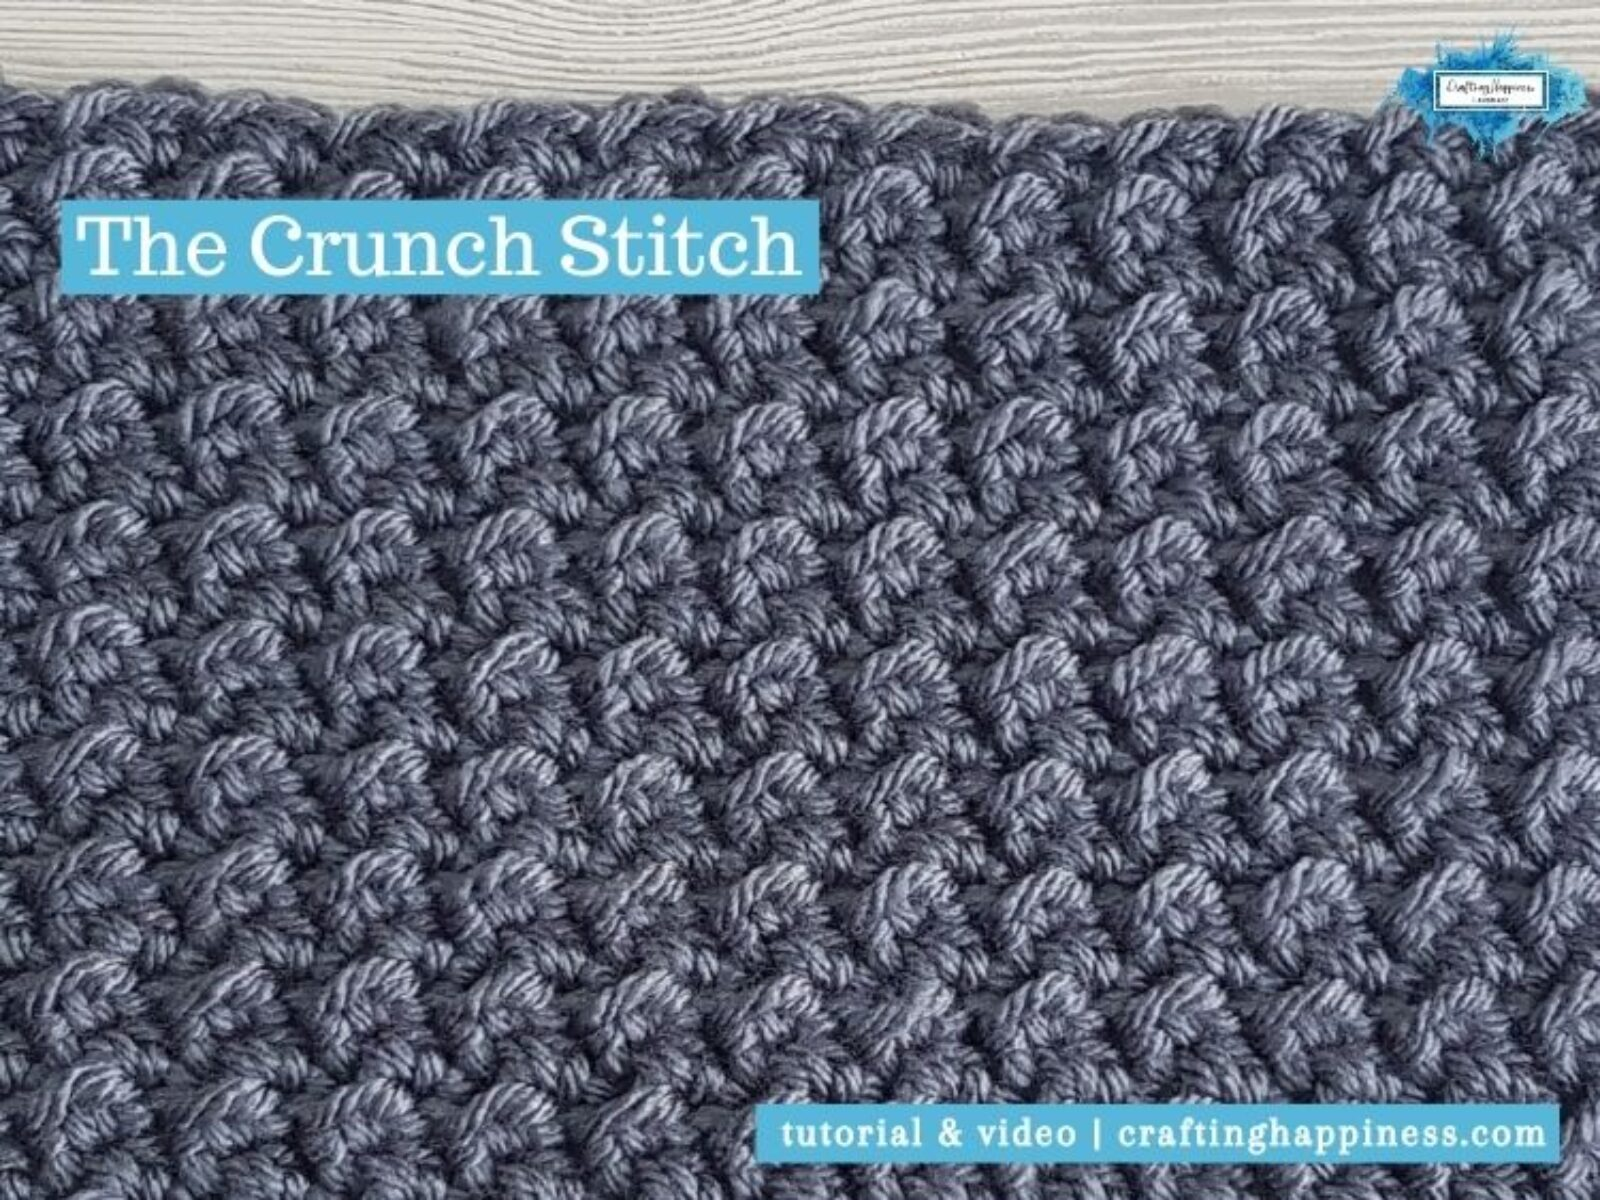 The Crunch Stitch by Crafting Happiness FACEBOOK POSTER